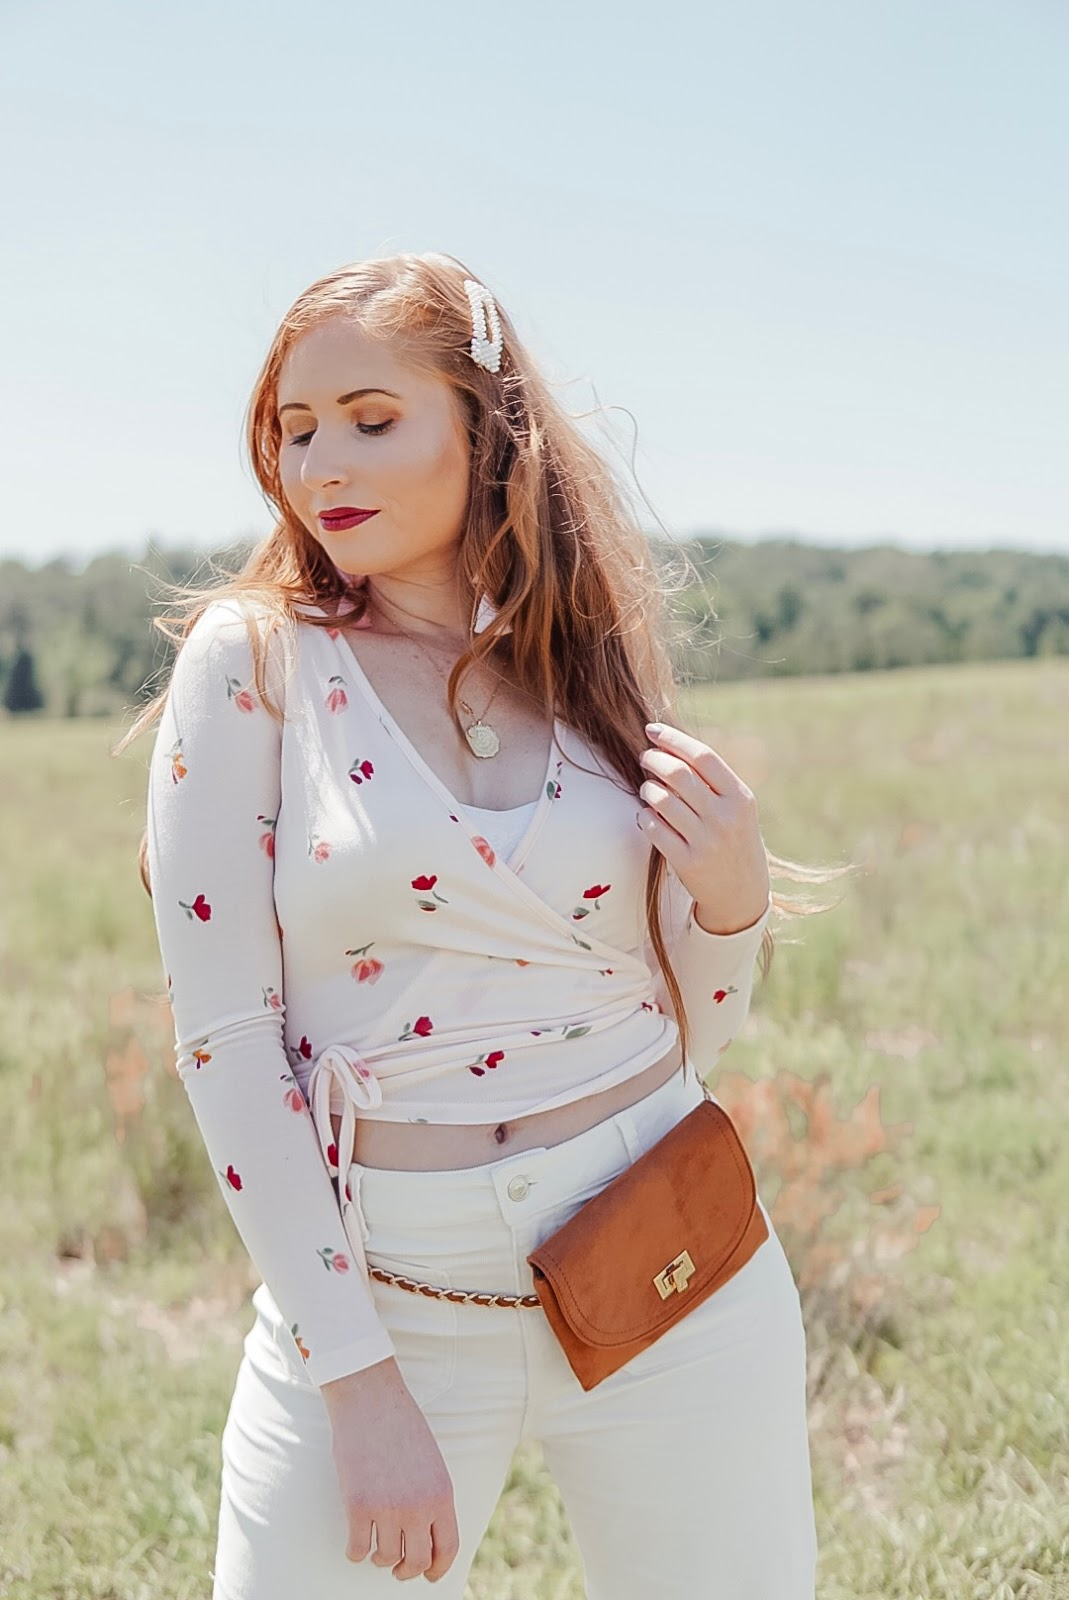 tampa blogger amanda burrows of affordable by amanda is wearing a florap wrap top and white corduroy jeans out in a wildflower field. she is wearing long extensions from barefoot blonde extensions in the color chestnut.